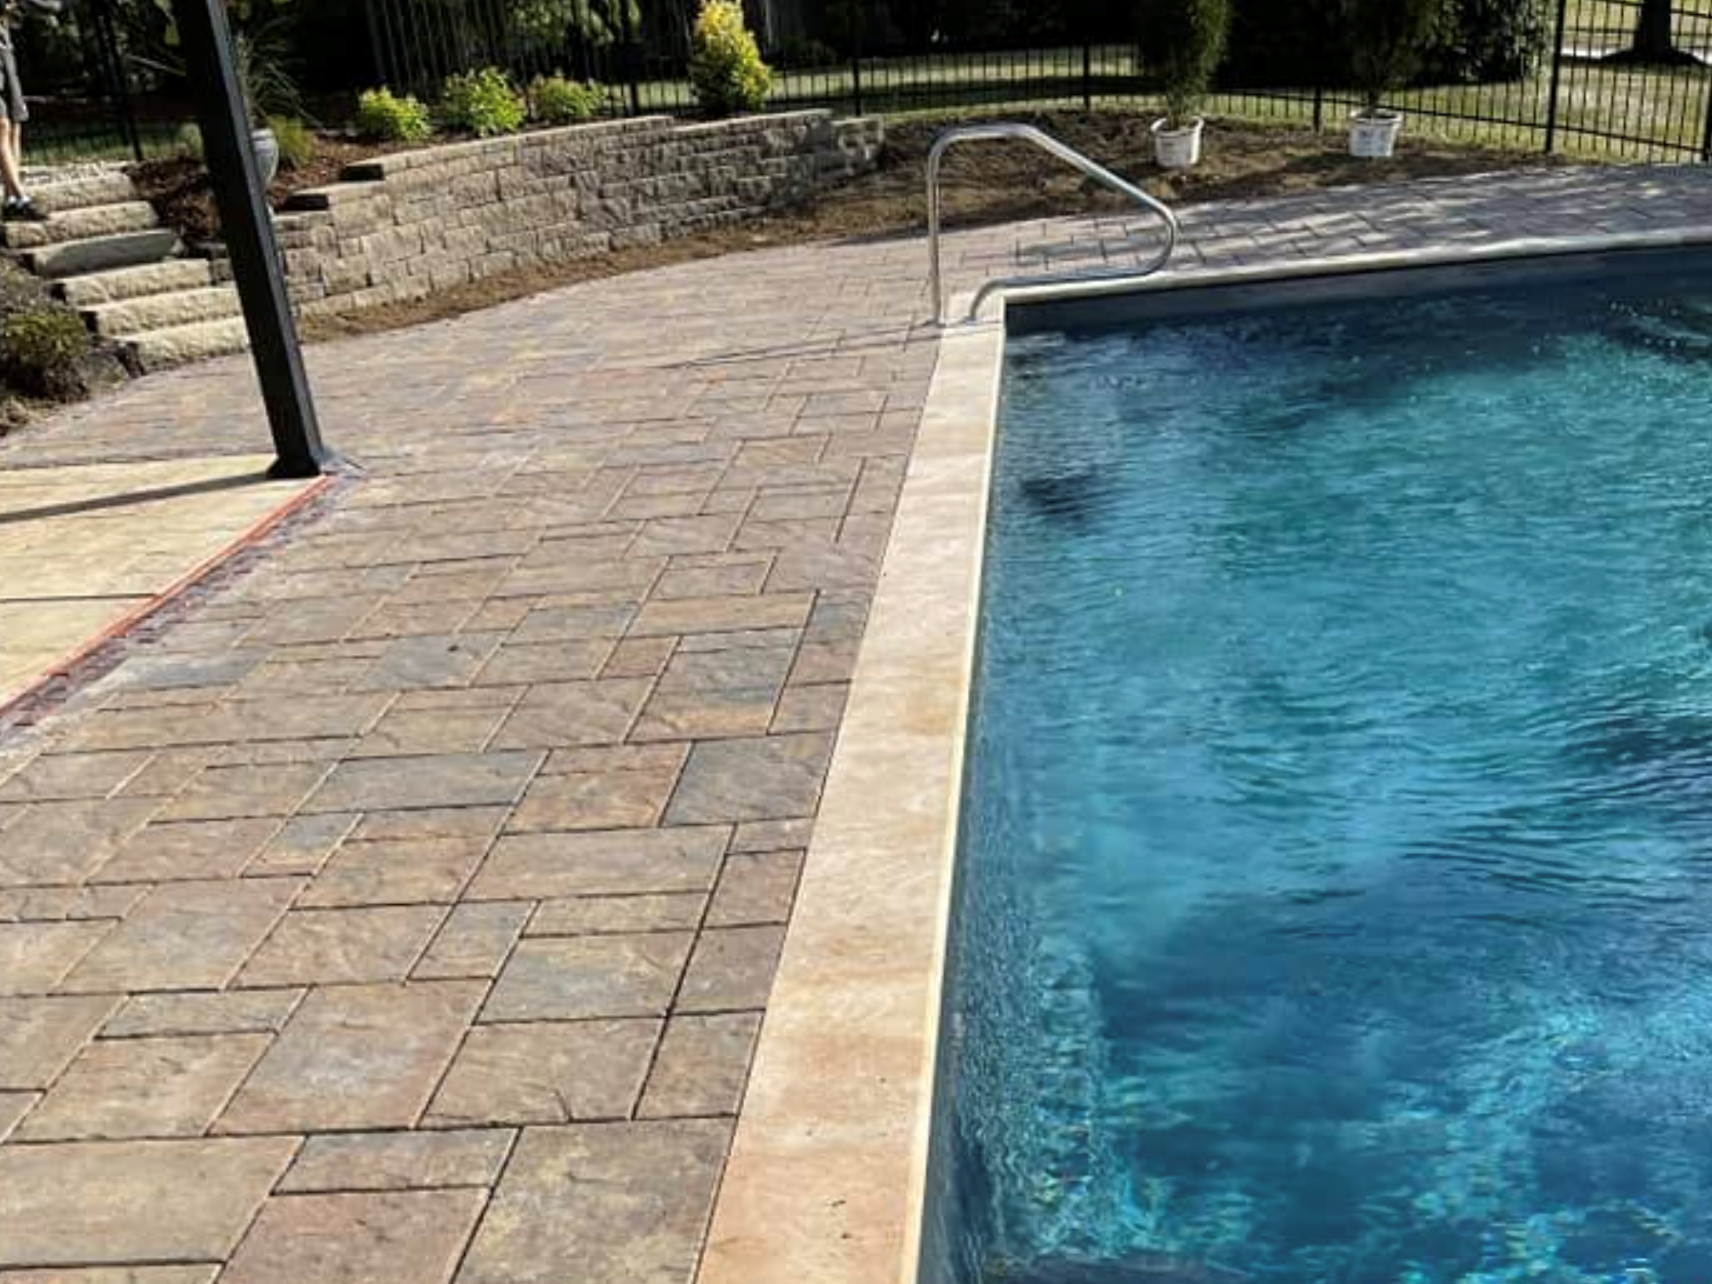 this image shows pool deck in Aliso Viejo, California